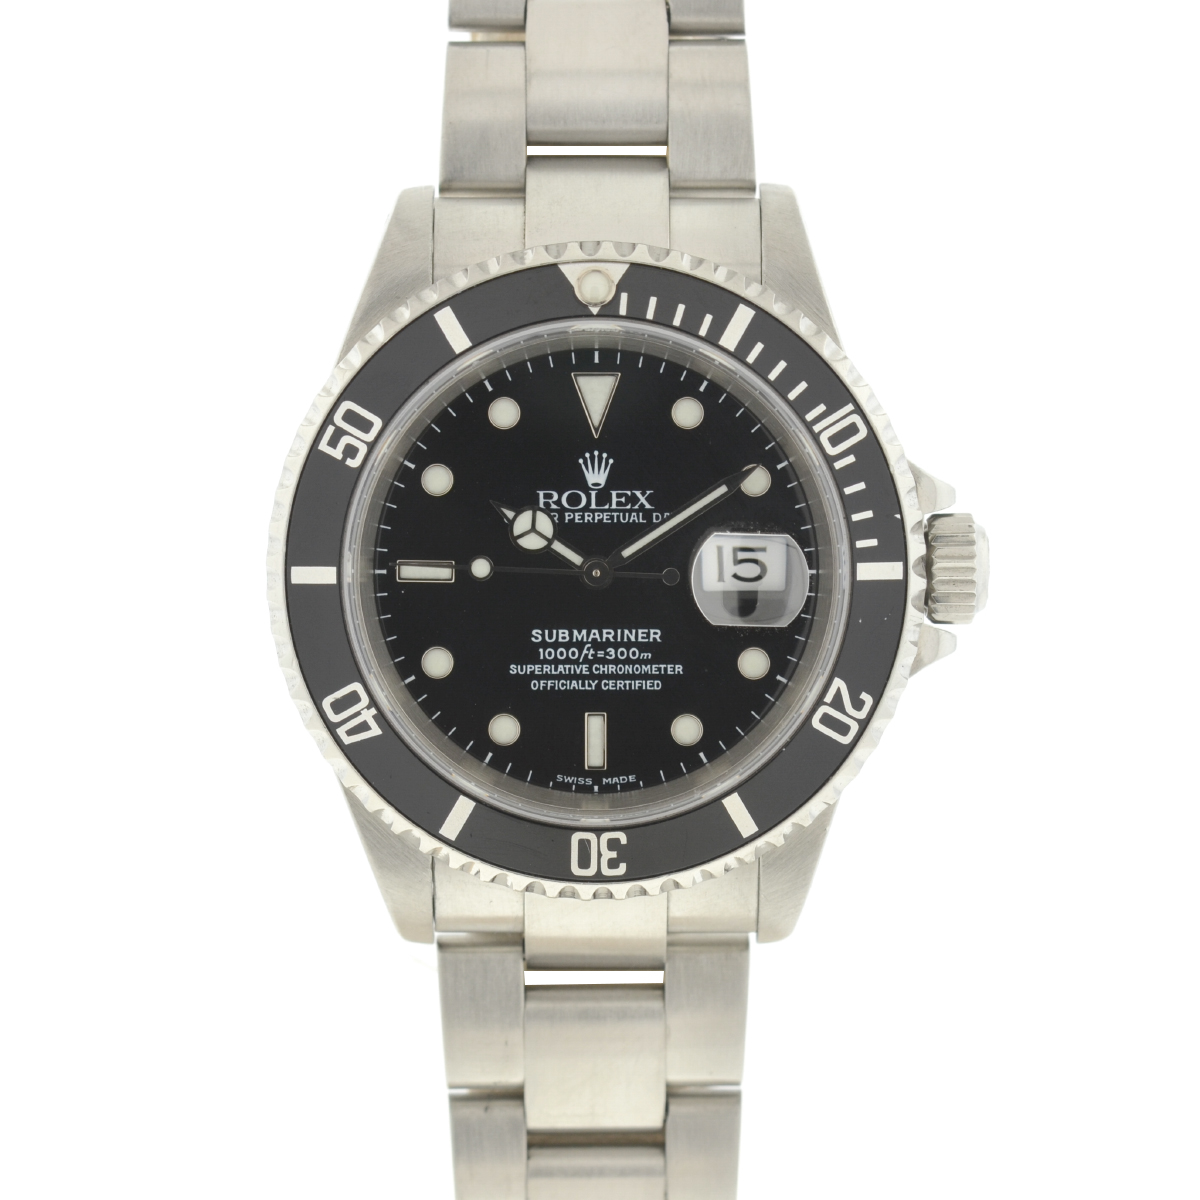 Rolex 116610 Submariner Stainless Steel Black Dial Automatic Men's Watch